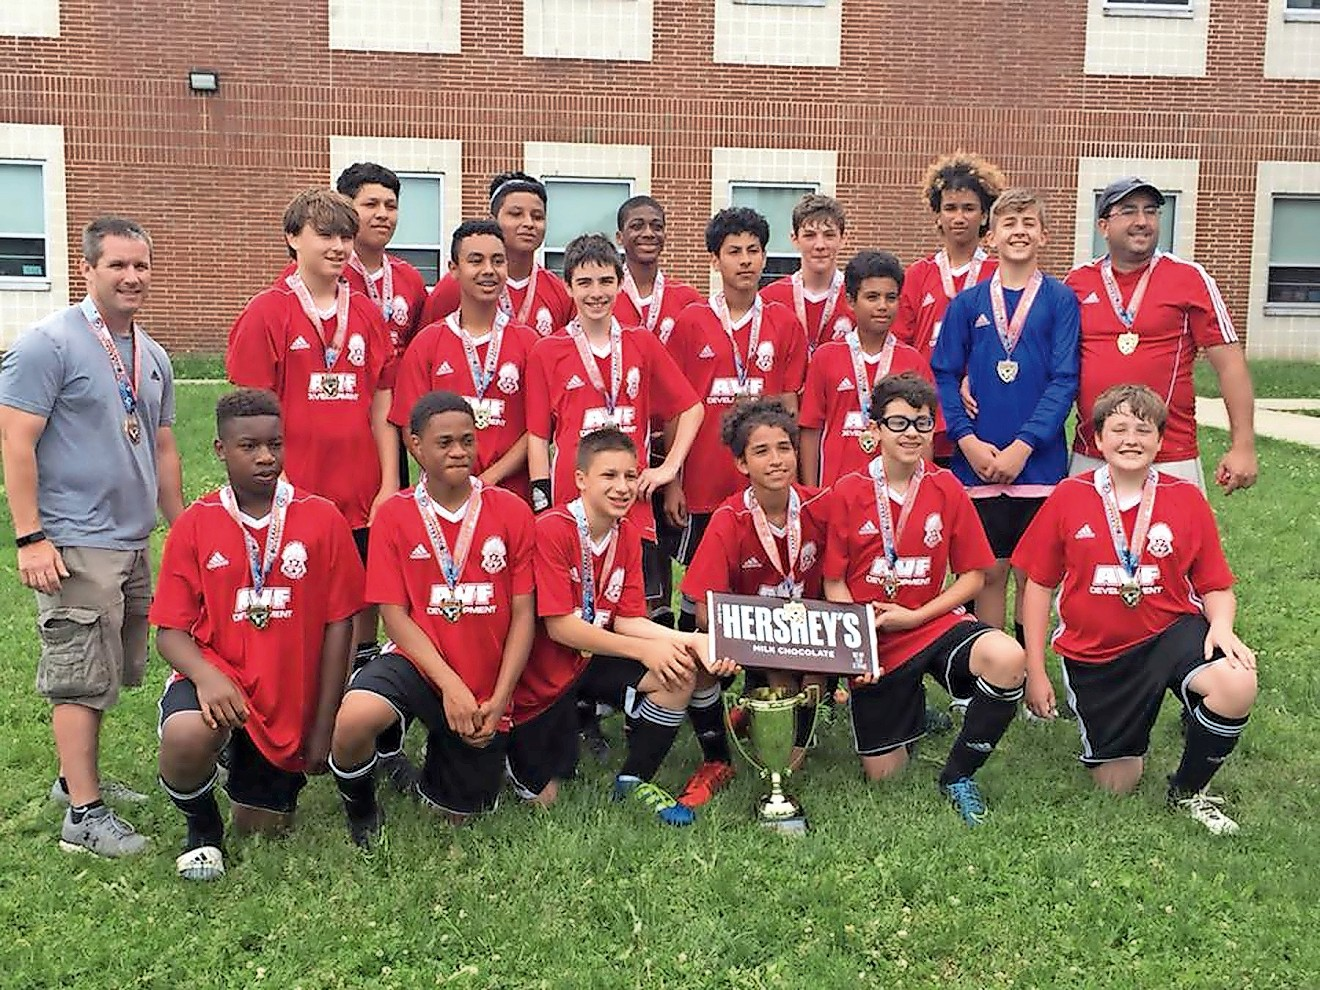 The West Hempstead Titans boys' 14-and-under team tied for first place in their division.